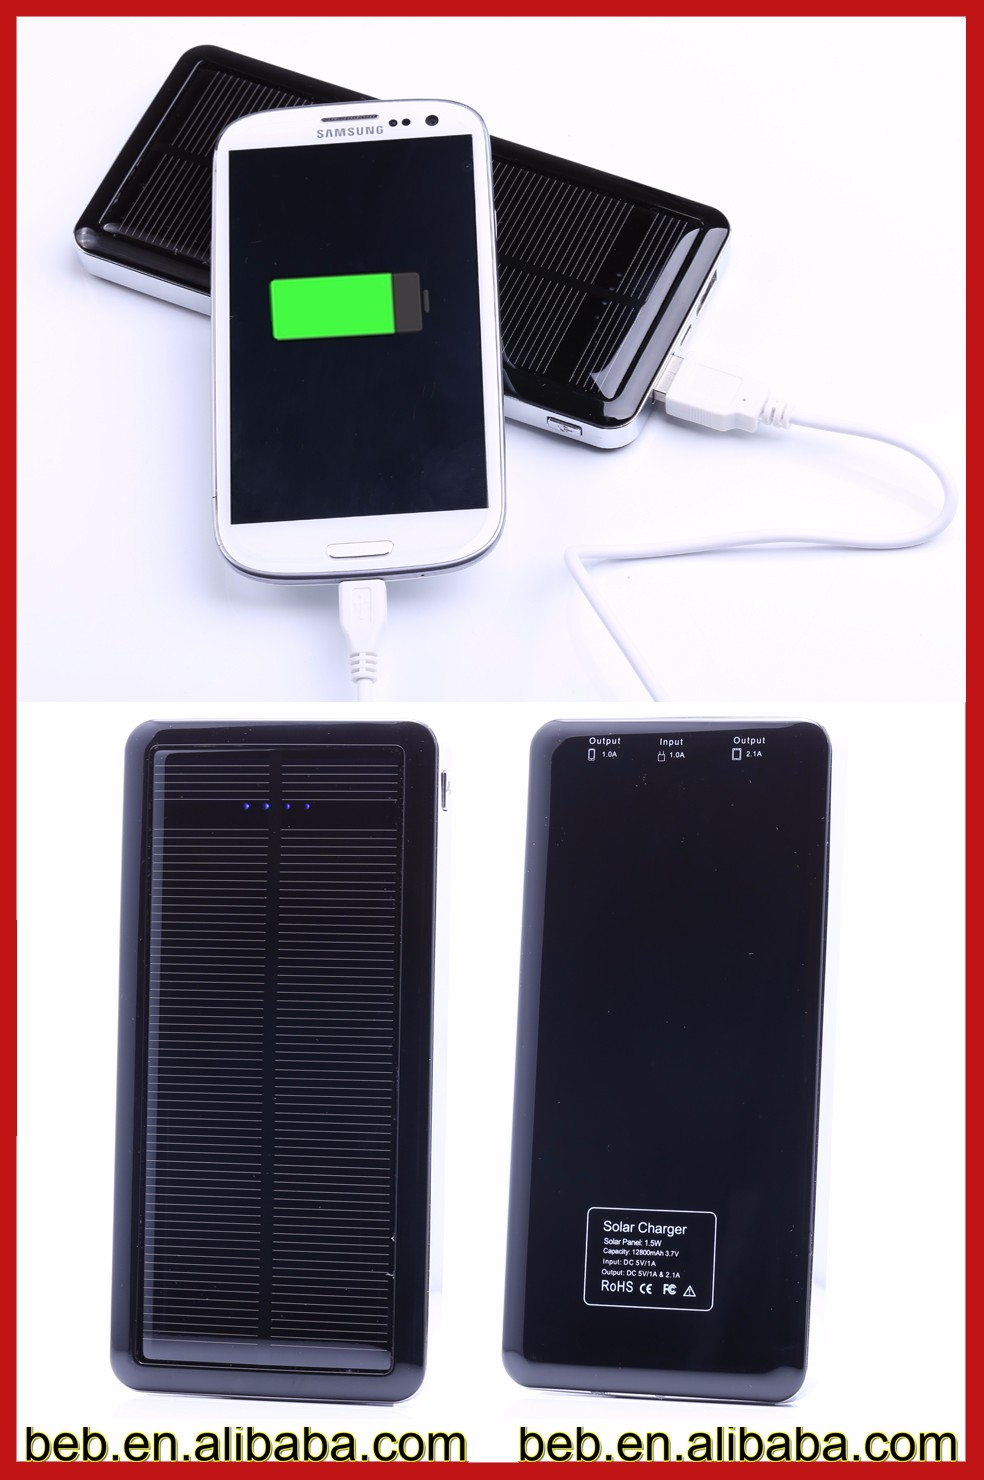 Best solar photovoltaic battery charger for travelling and hiking